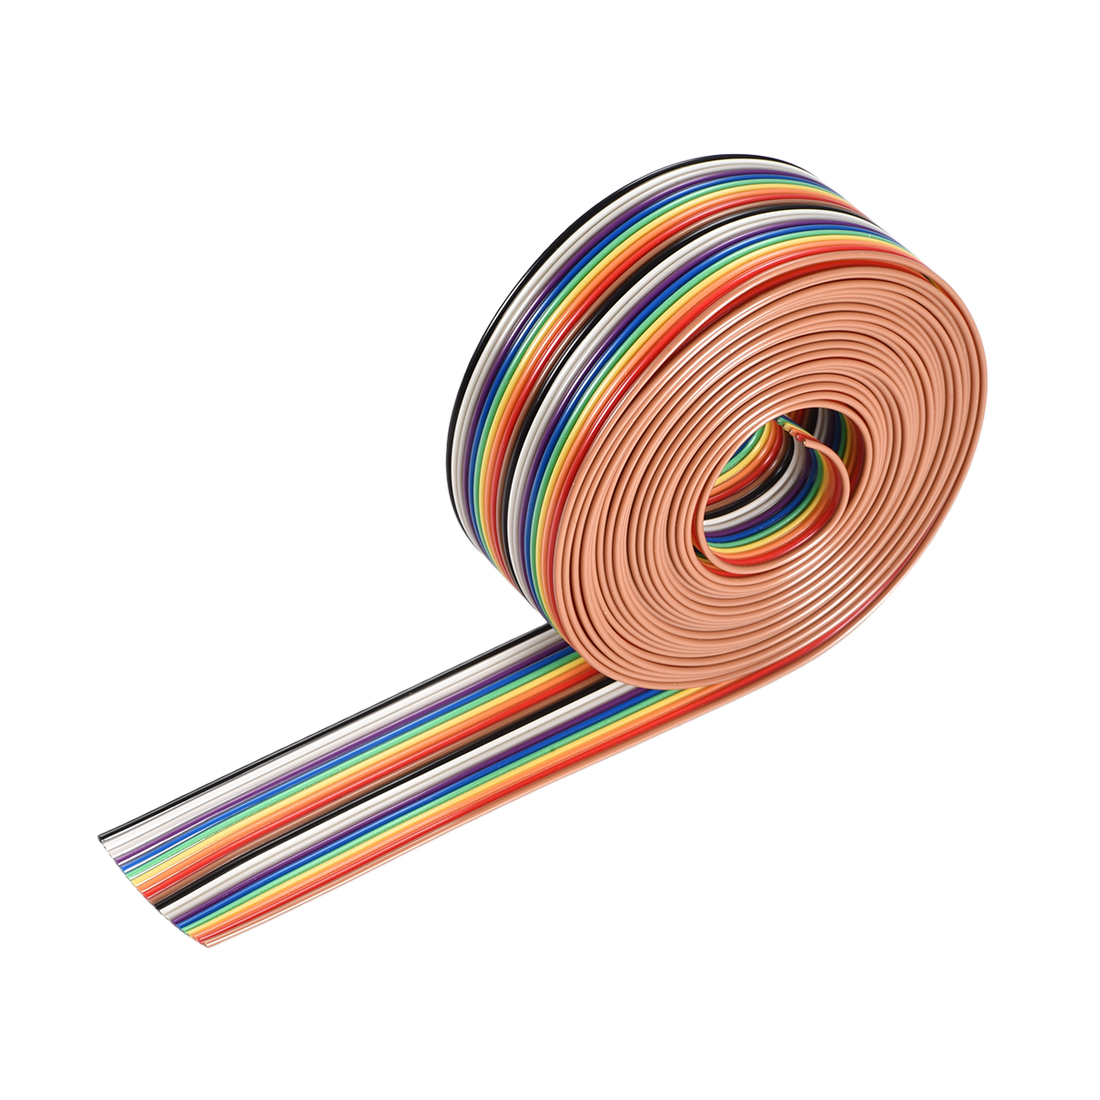 IDC Rainbow Wire Flat Ribbon Cable 20P 1.27mm Pitch 3meter/9.8ft Length